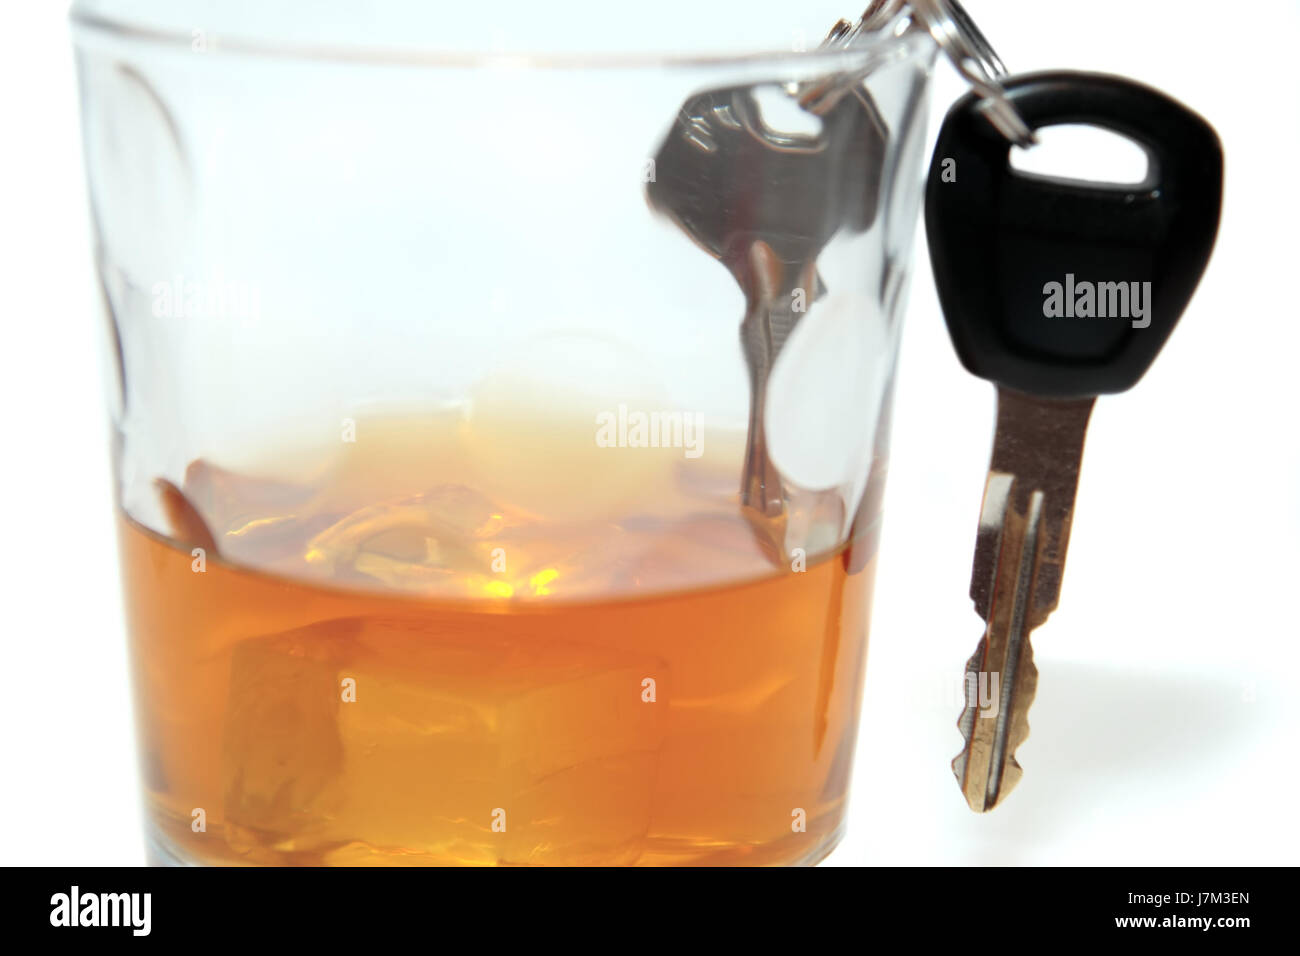 drink drinking bibs alcohol lust addiction tendency crime addicted alcoholism - Stock Image